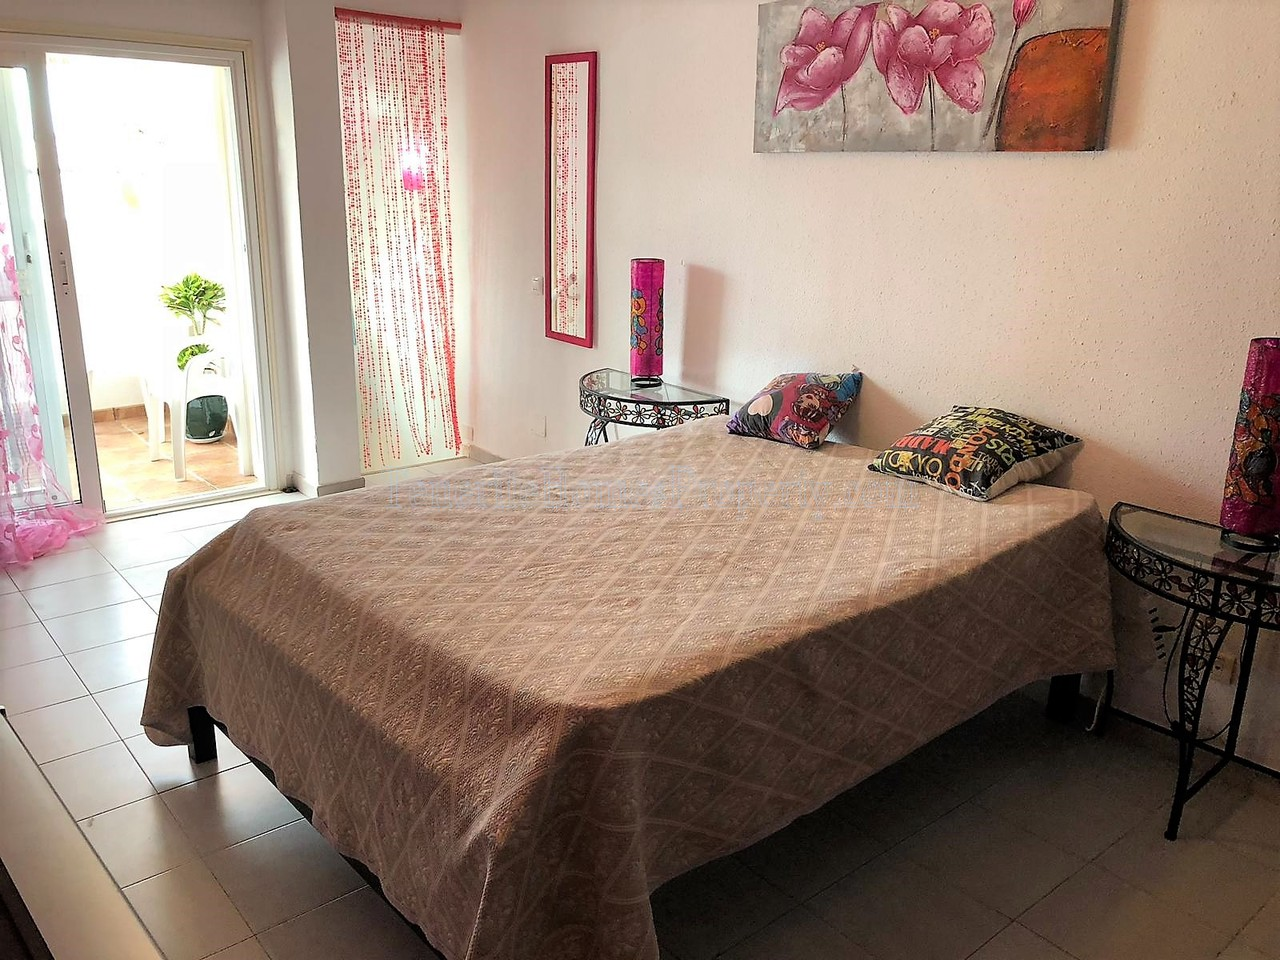 1 bedroom apartment for sale in Colina Blanca, San Eugenio, Costa Adeje, Tenerife €138.000